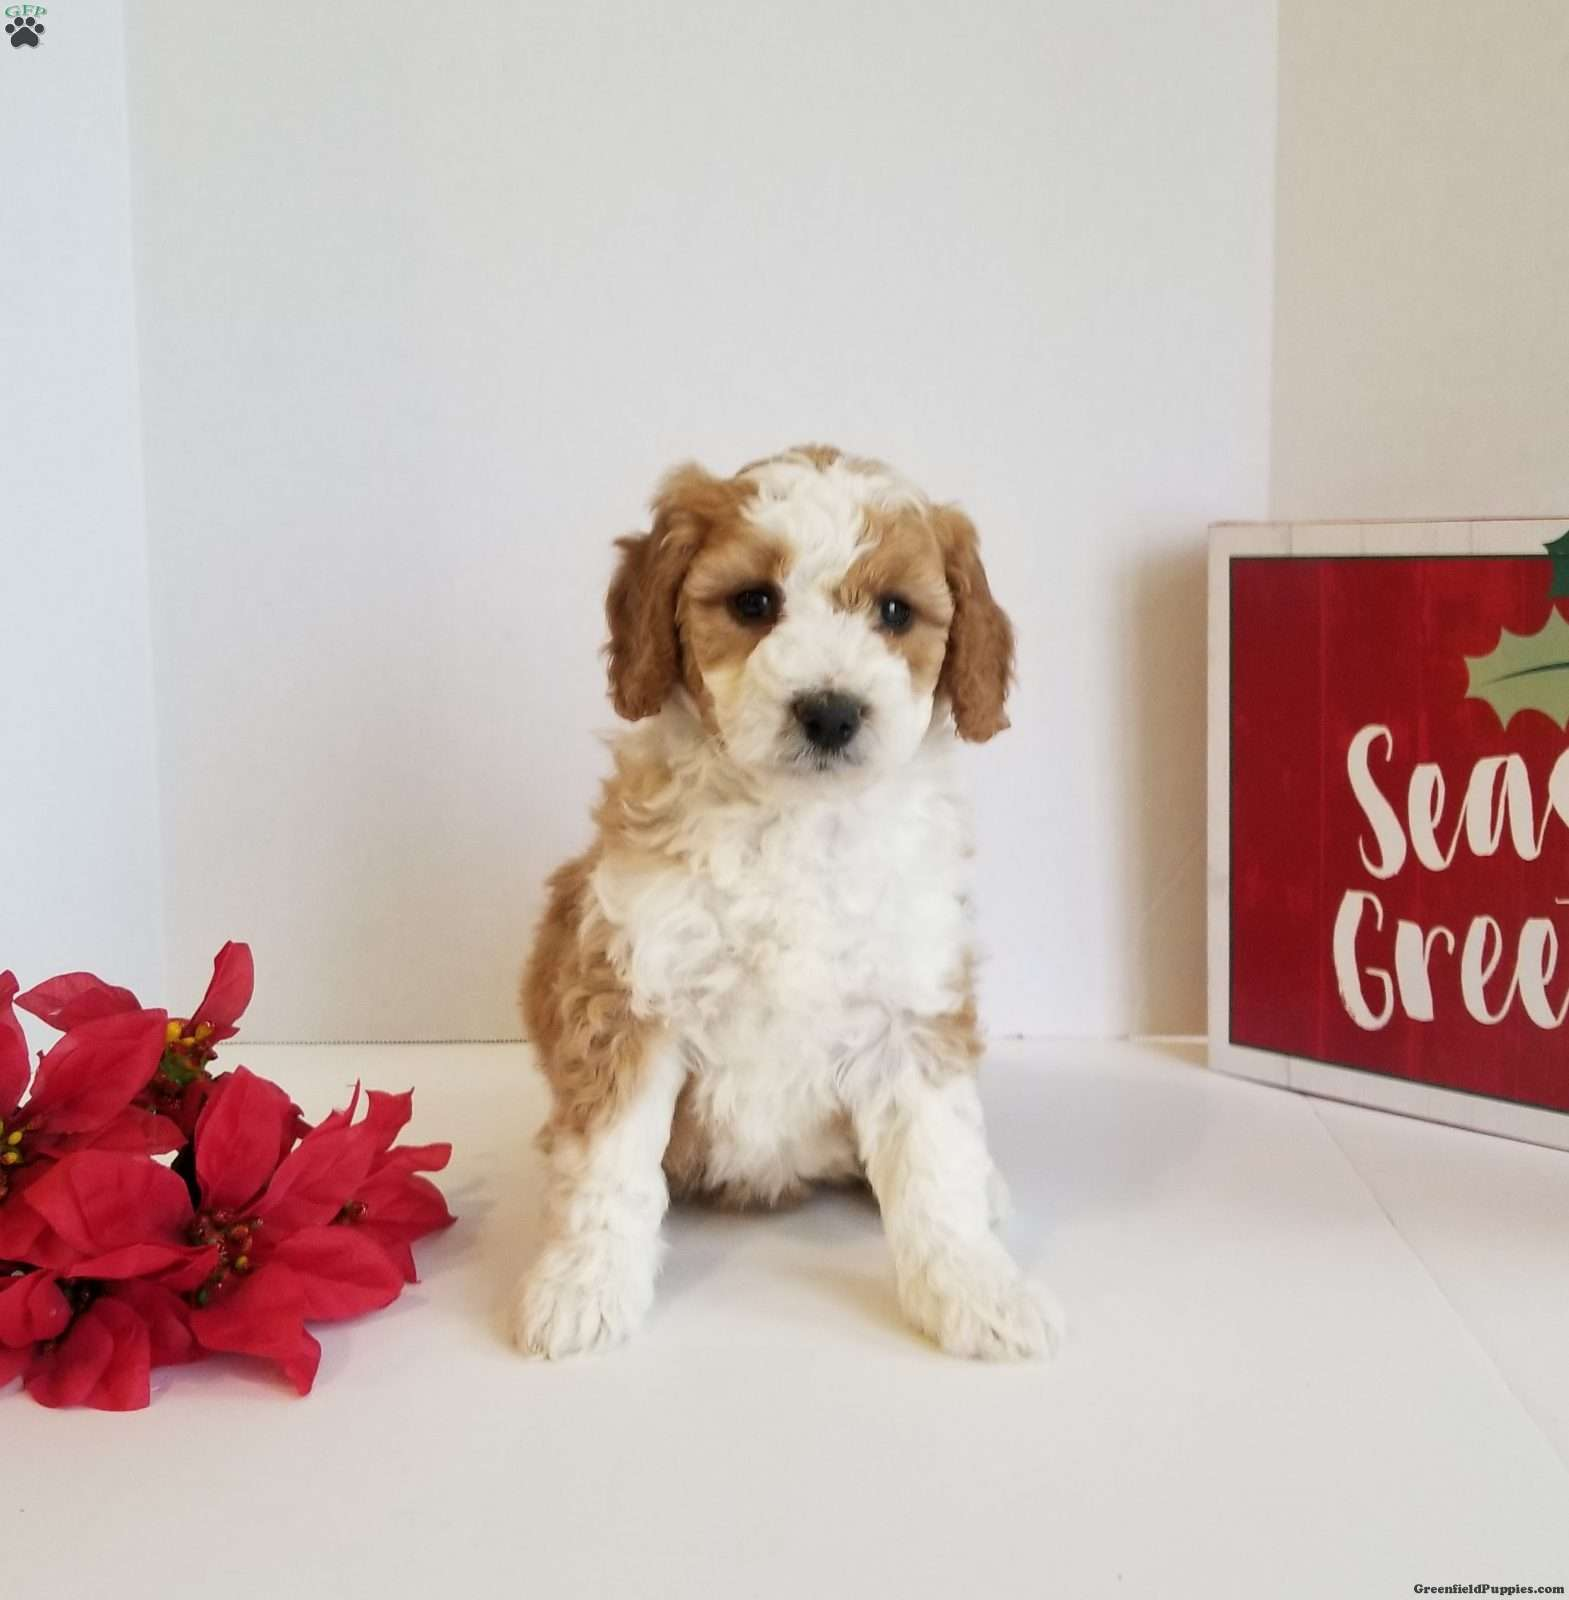 Holly Mini Golden Mountain Doodle Puppy For Sale In Virginia